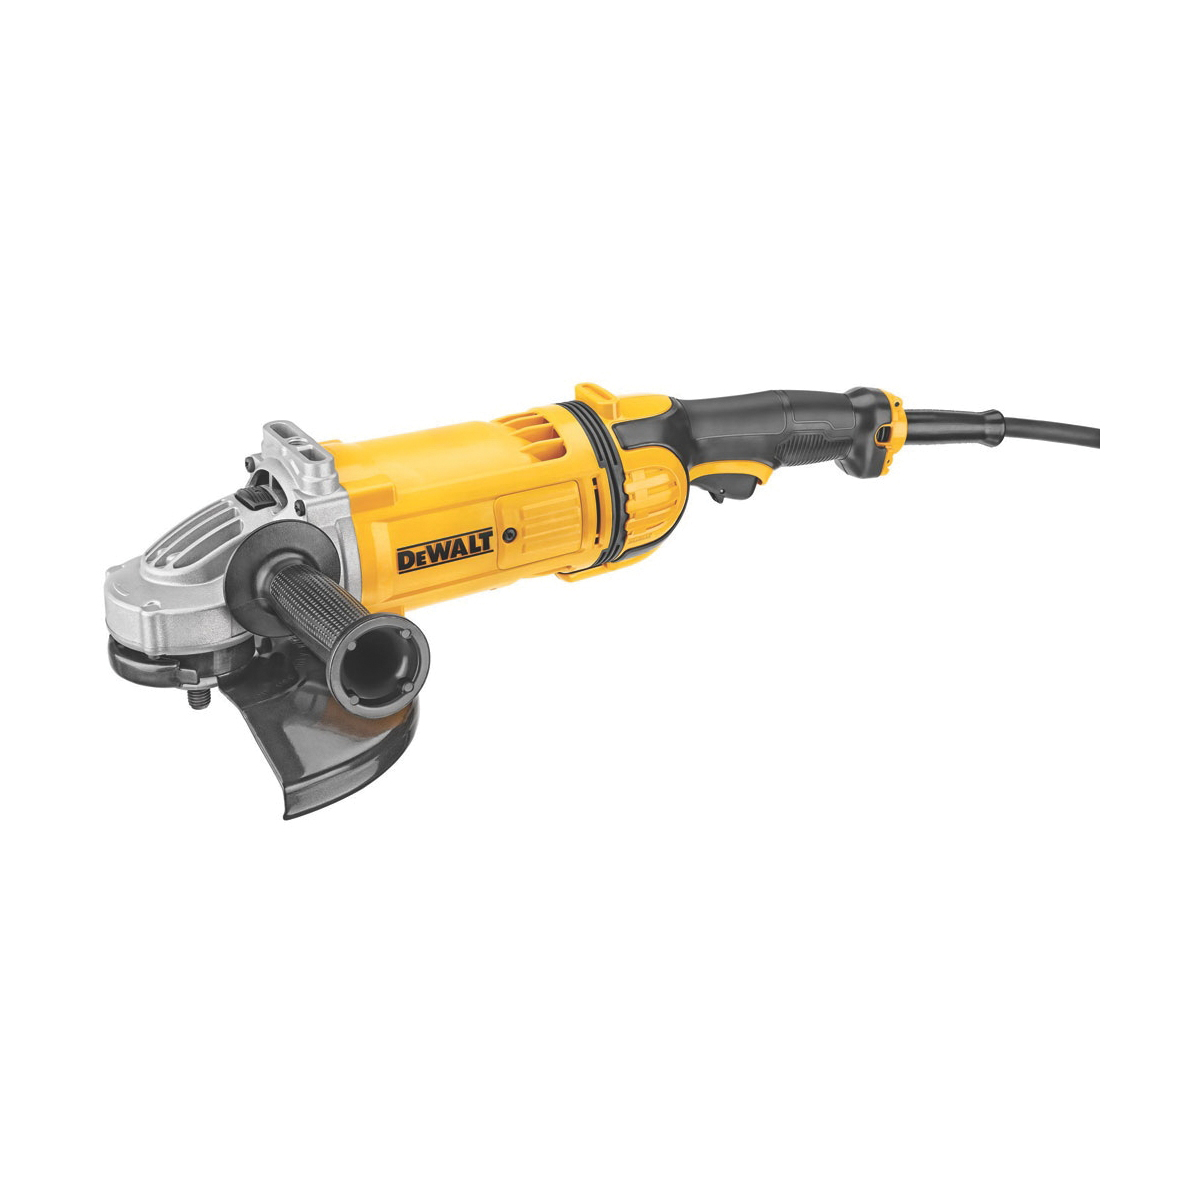 DeWALT® DWE4559N Large Angle Grinder, 9 in Dia Wheel, 5/8-11 Arbor/Shank, 120 VAC, Yellow, Yes, Lock-Off Trigger Switch Switch